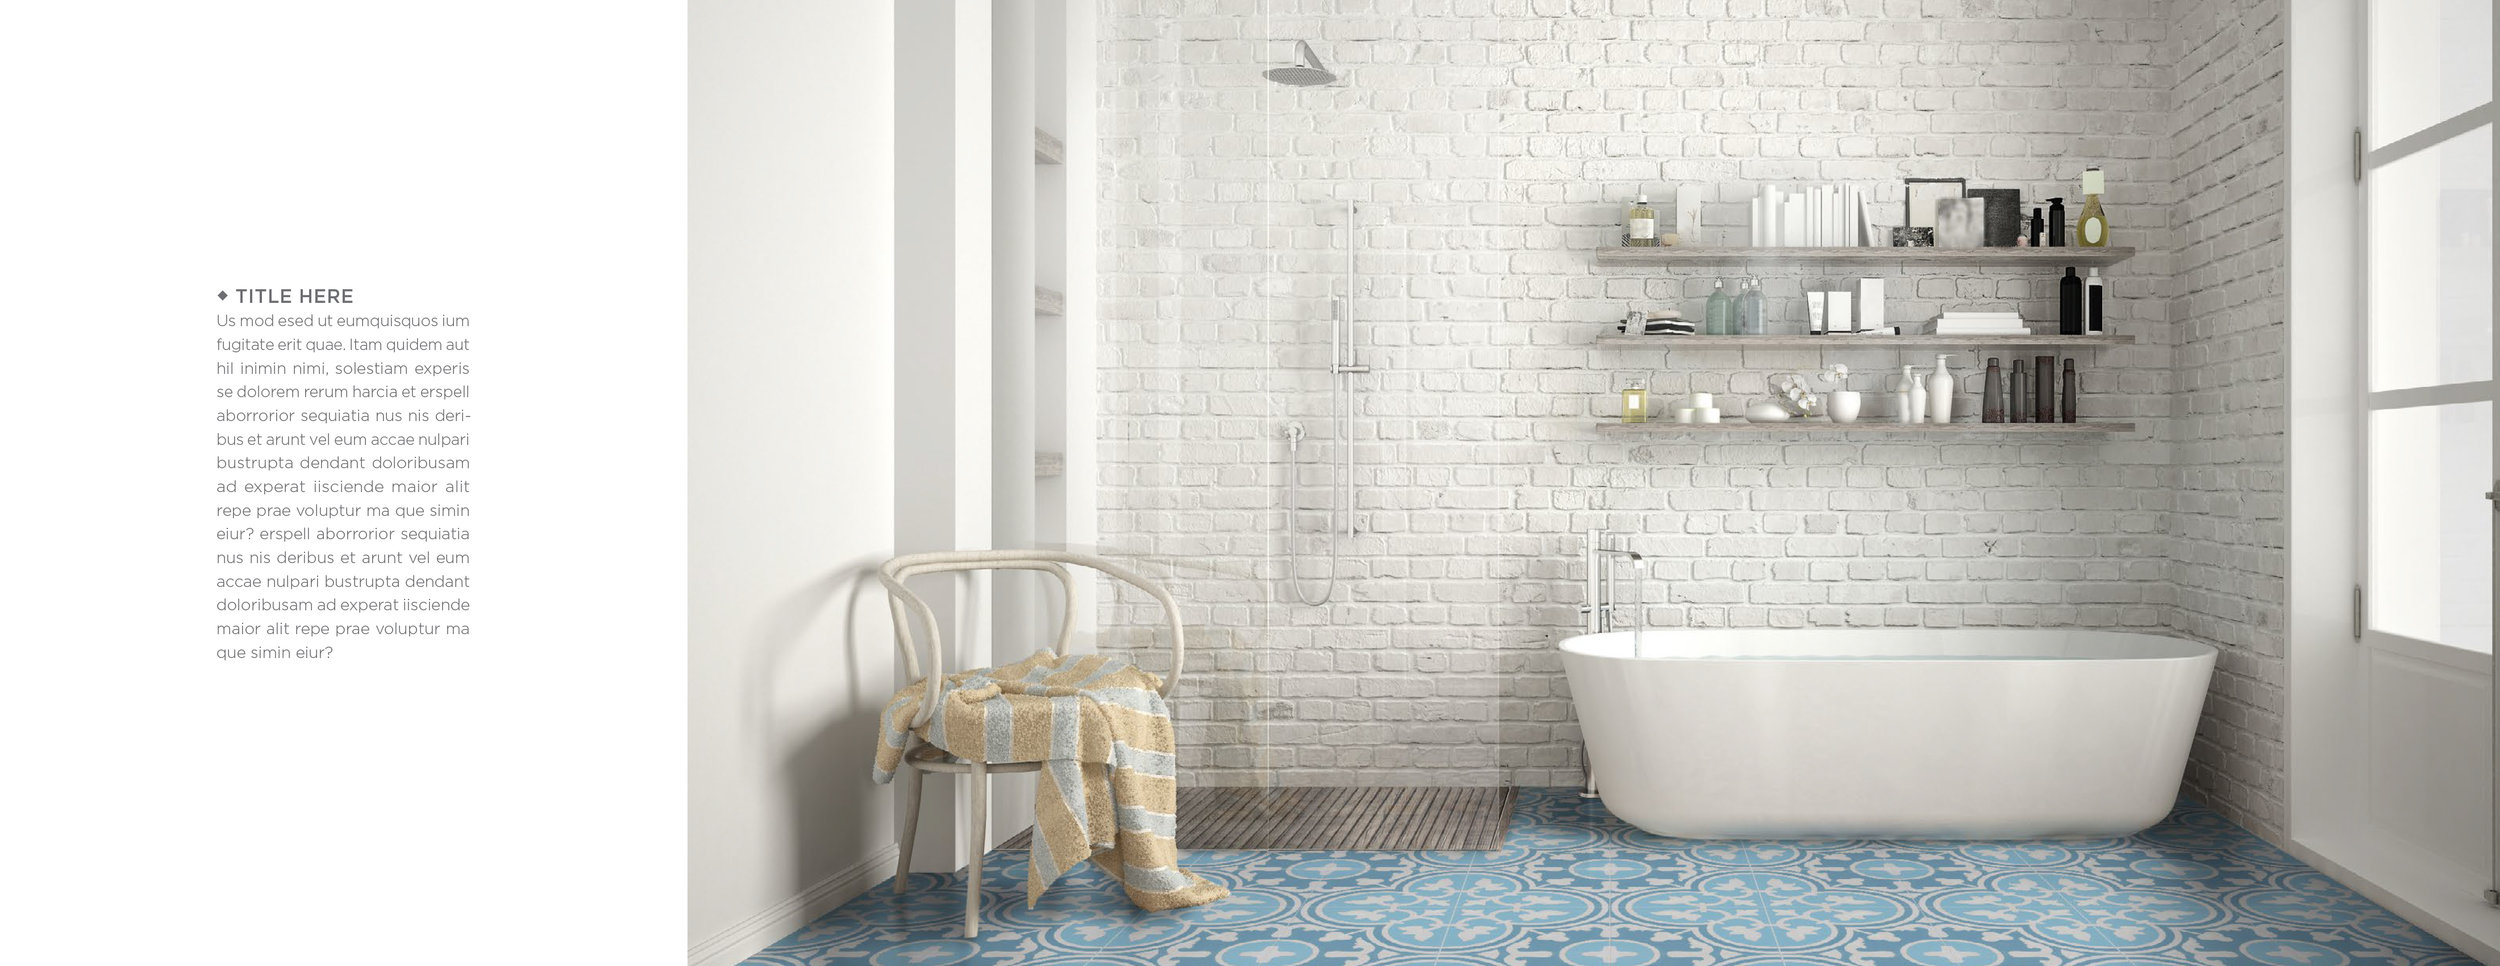 tile and bathroom catalog 2.jpg